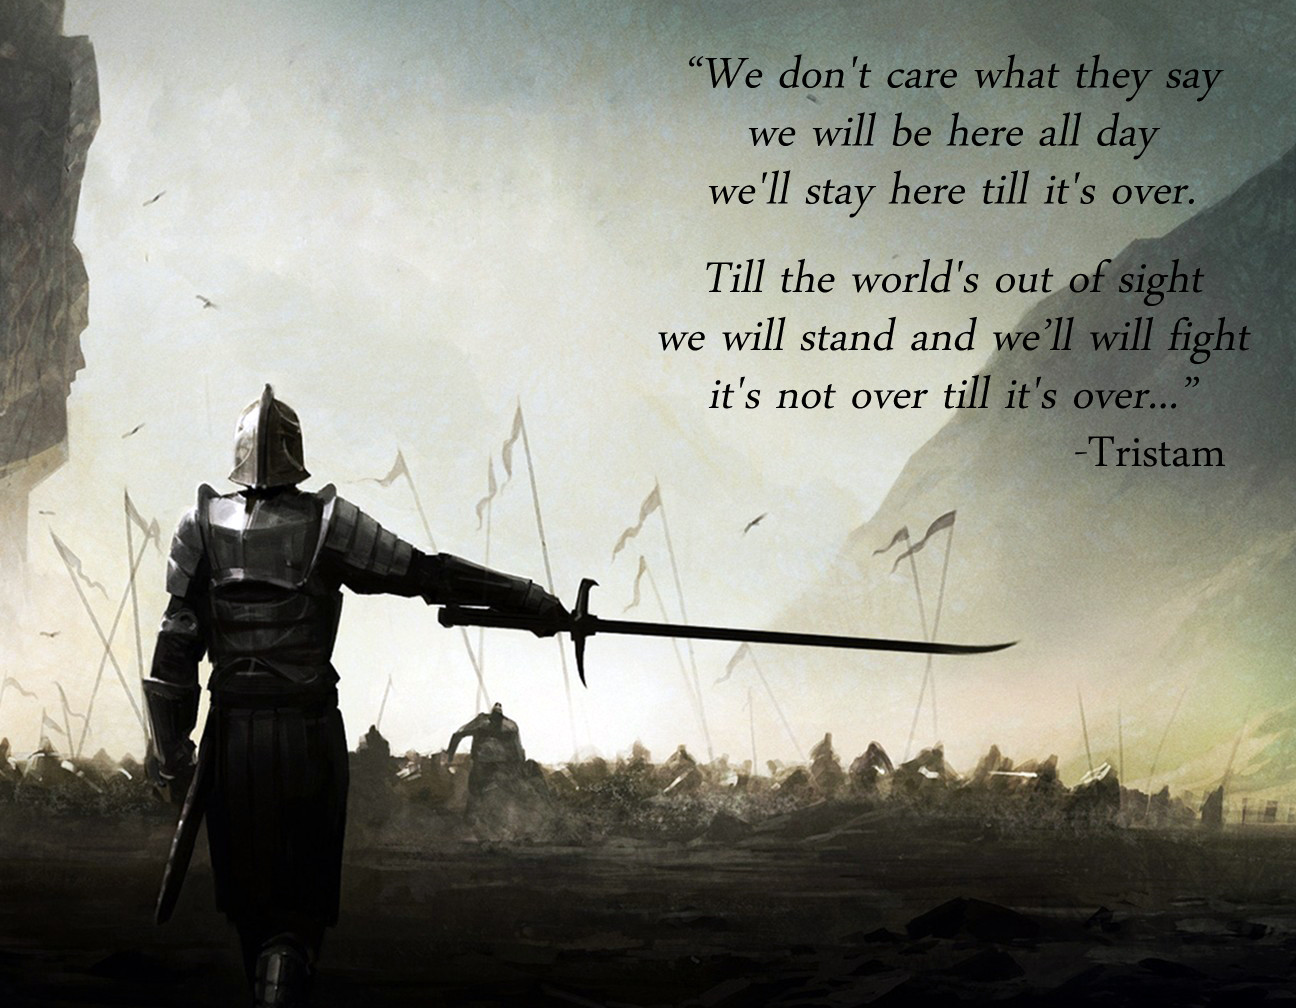 Tristram Stands Tall & Fights On.